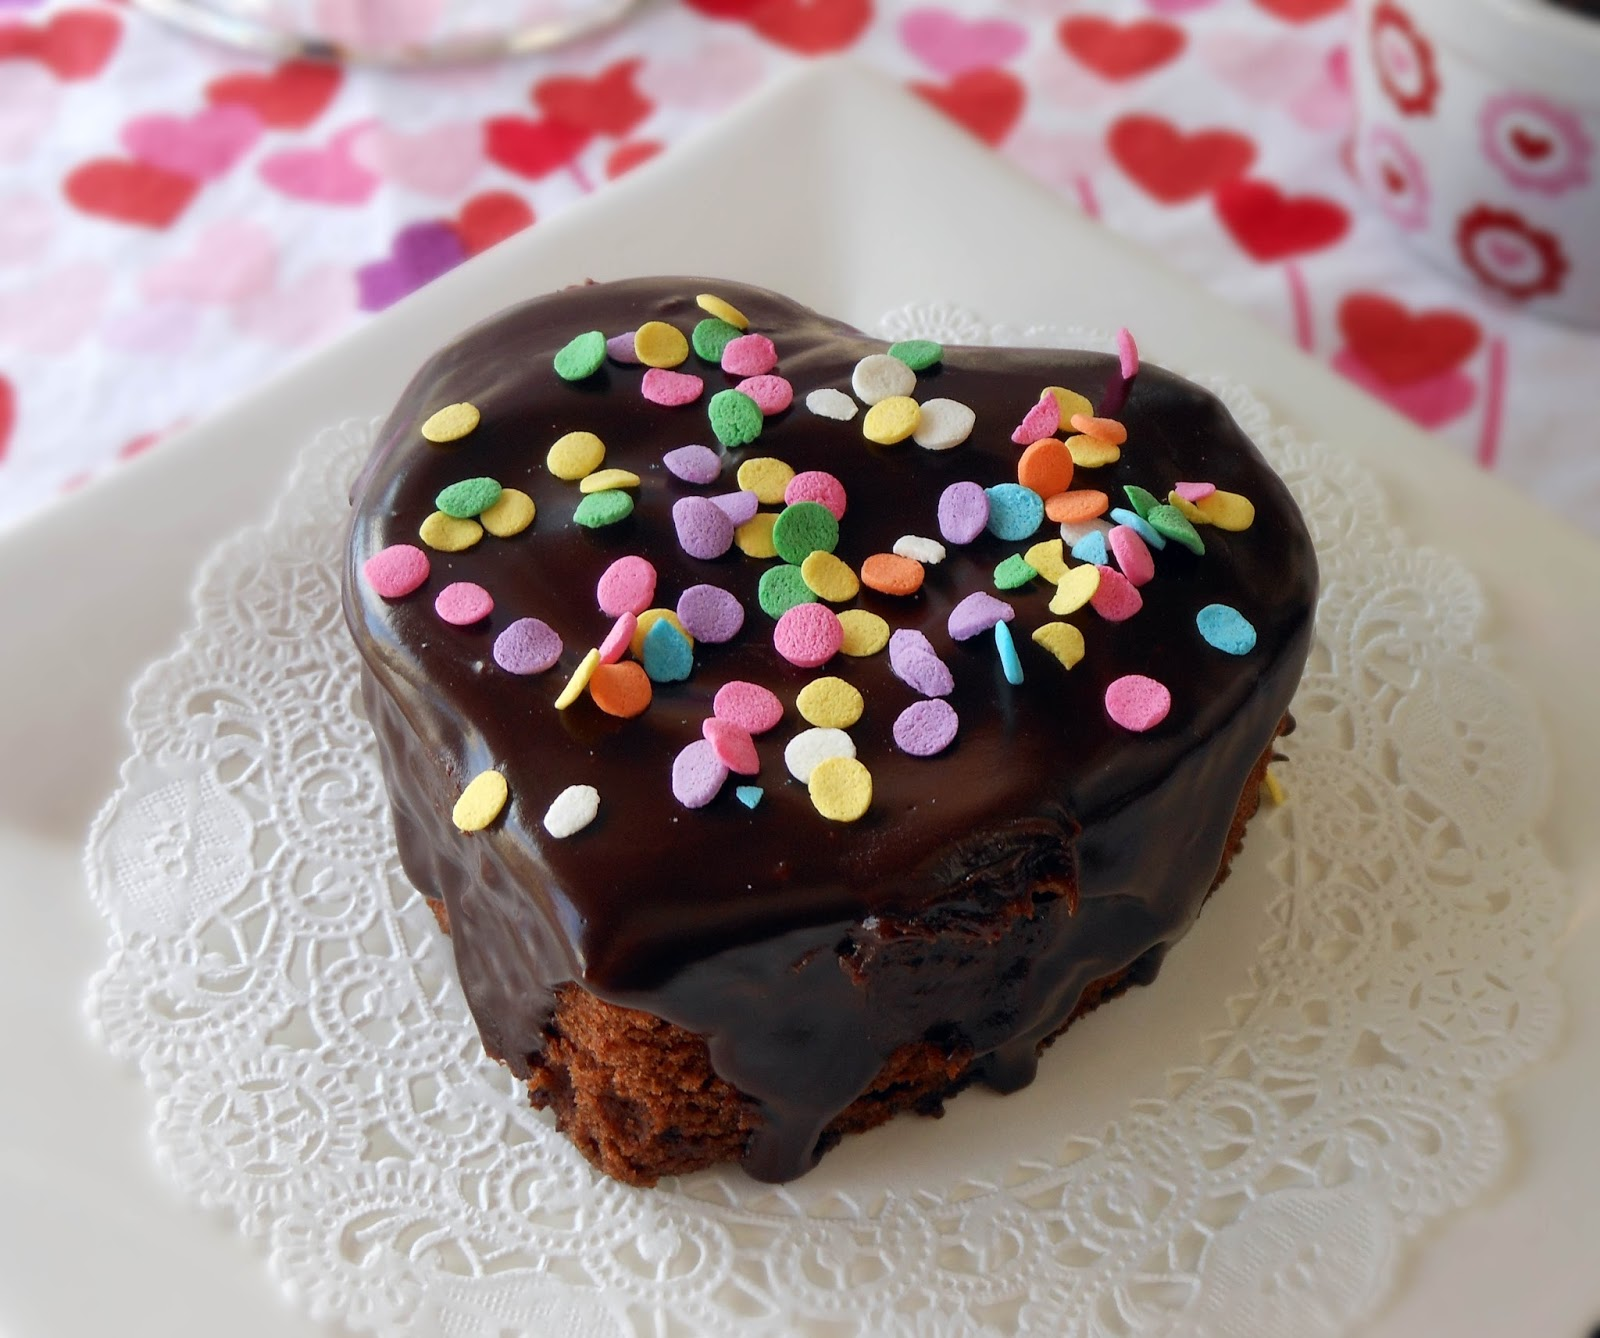 My Cookie Clinic Mini Chocolate Heart Cakes Convection Bake